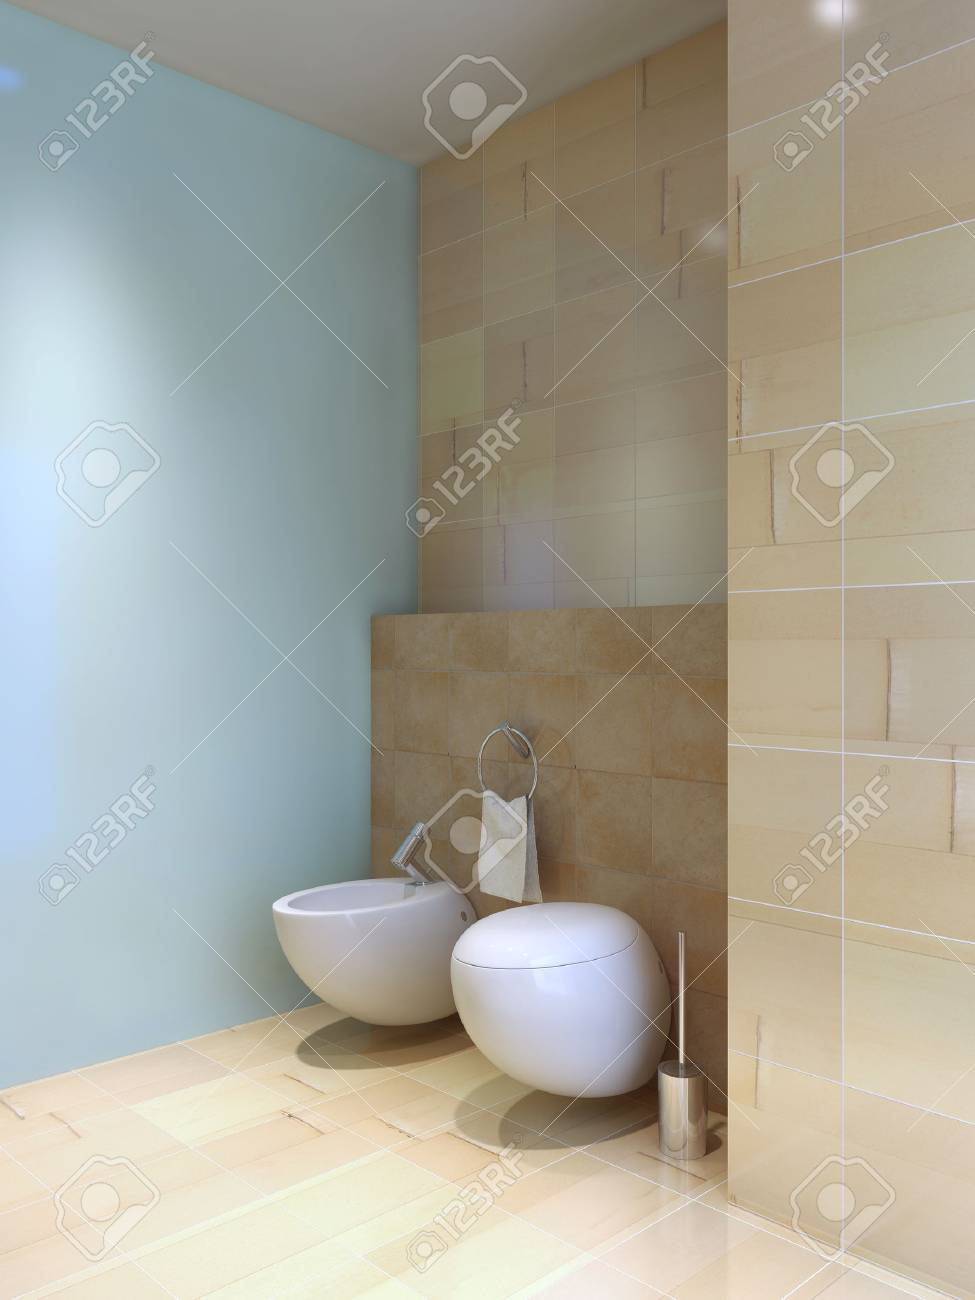 Toilet And Bidet Near Tiled Wall. Fusion Styled Interior Of Wc ...